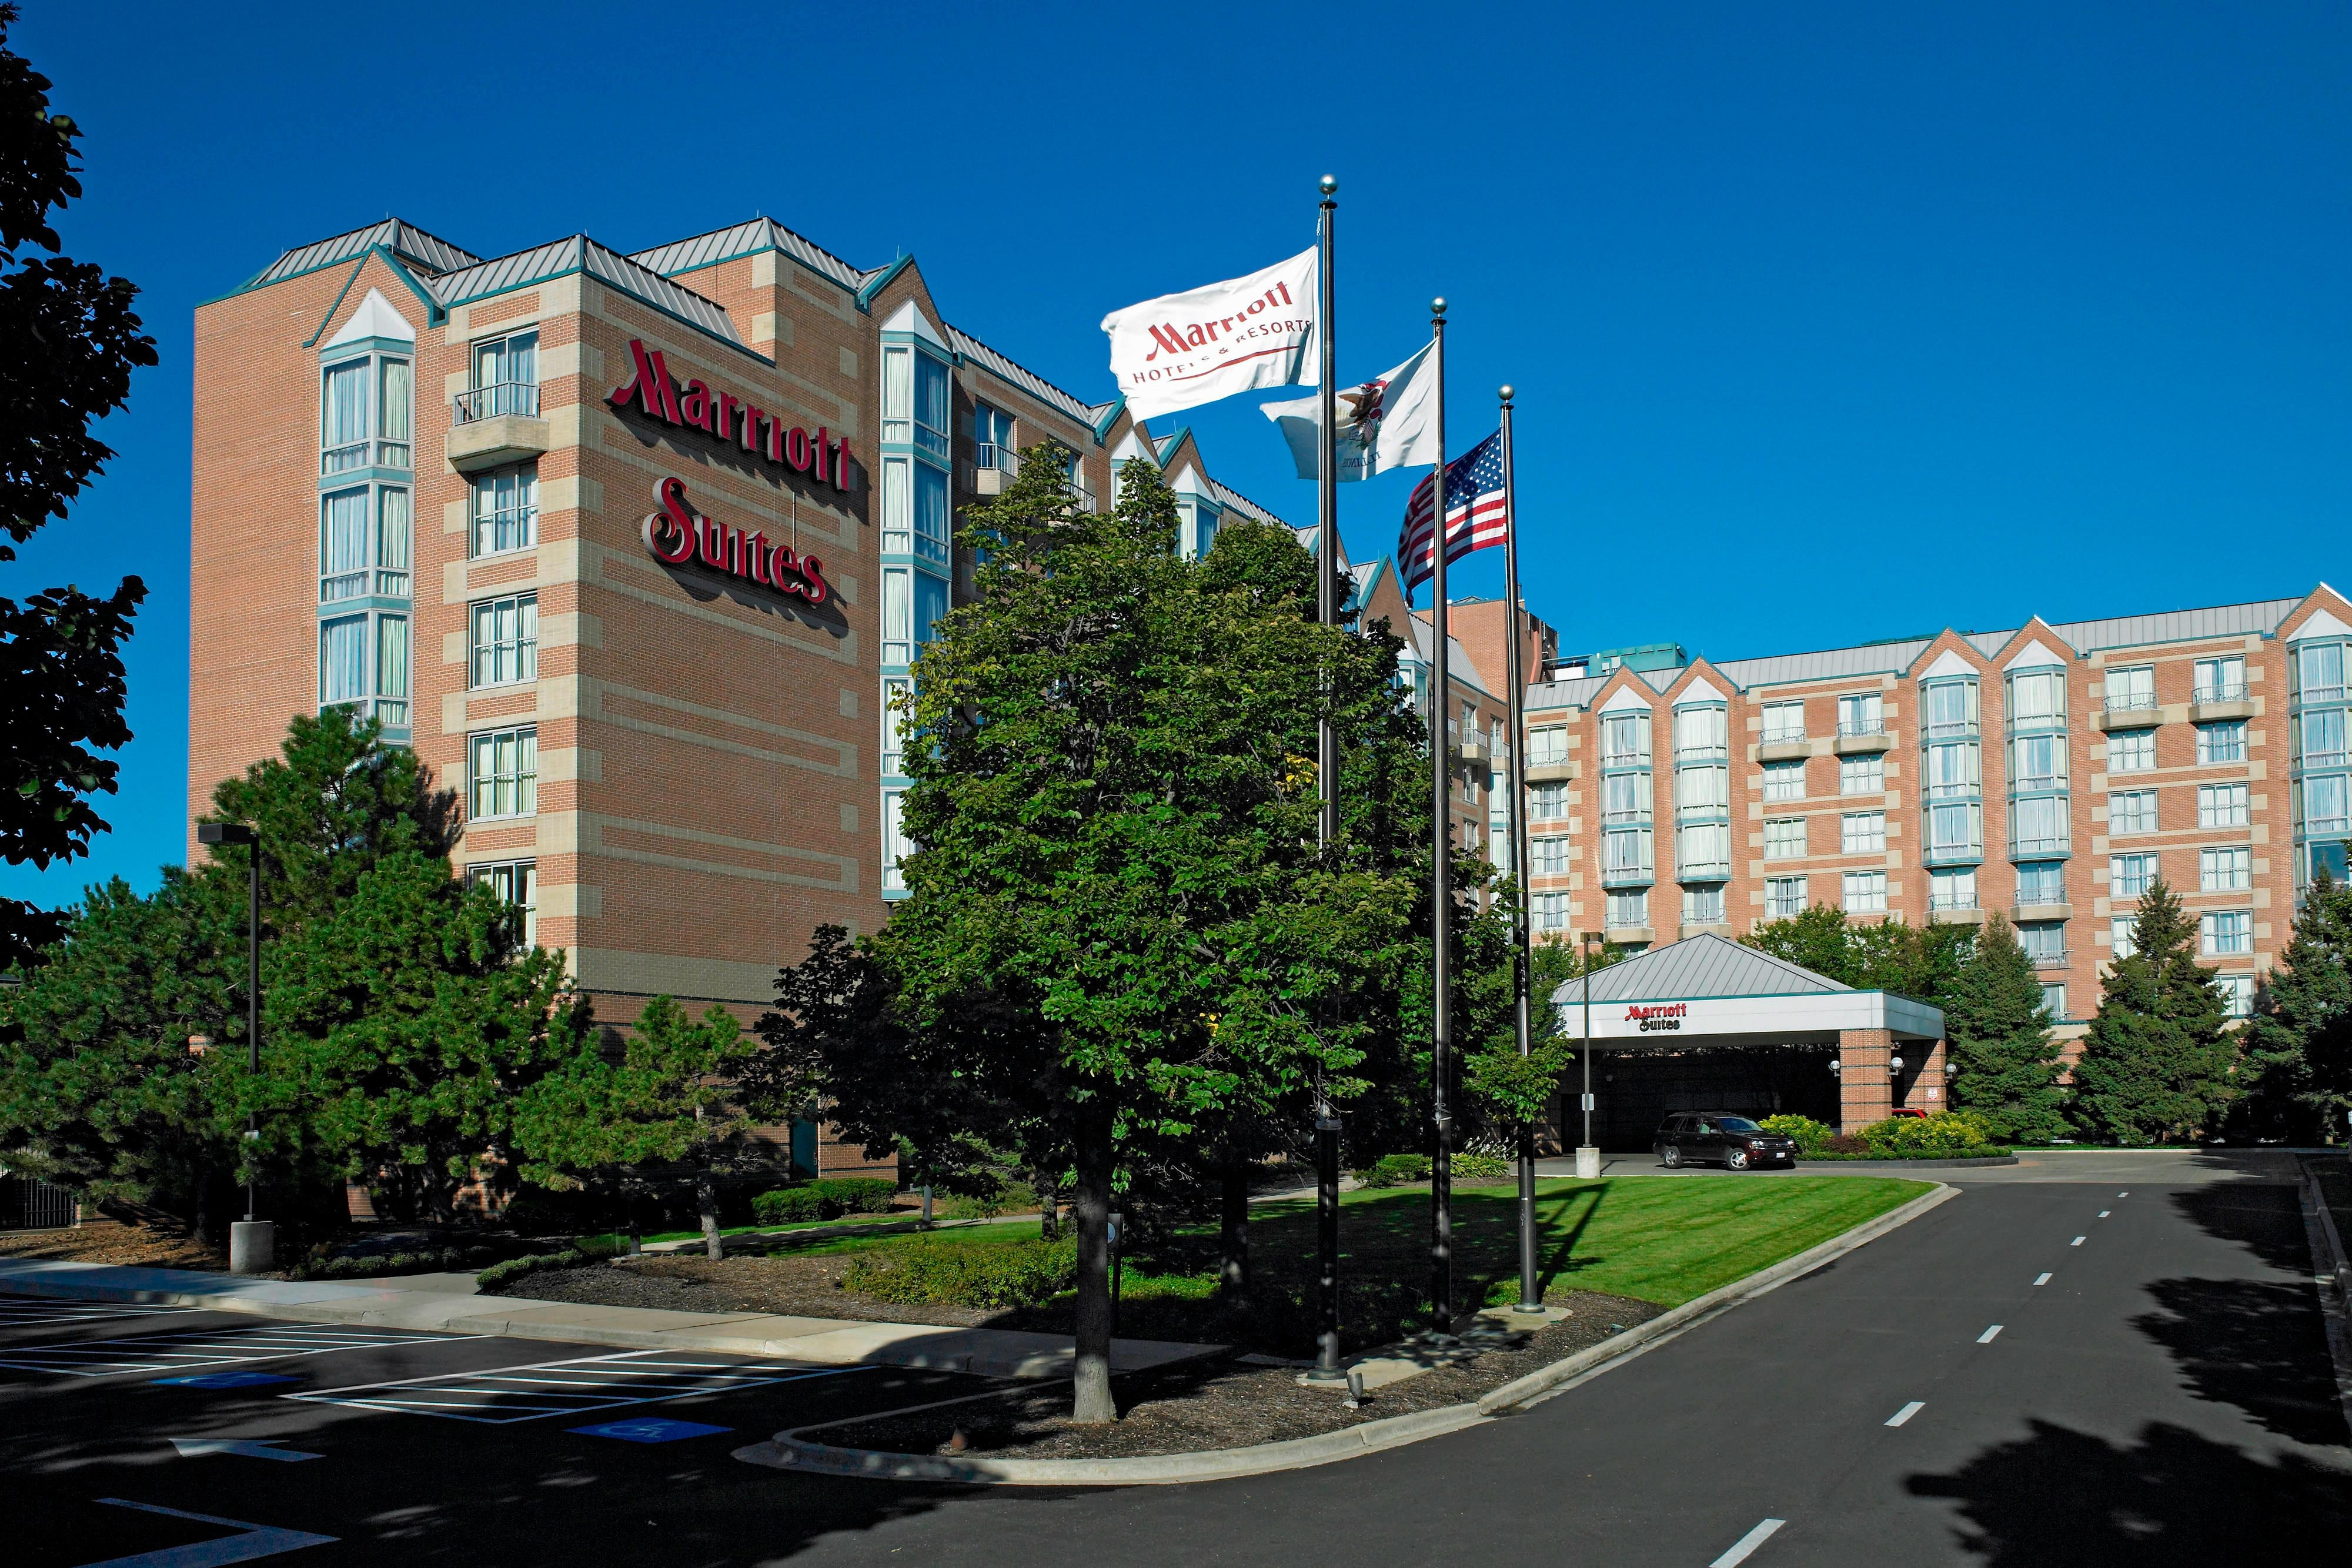 Chicago Marriott Suites Downers Grove Exterior